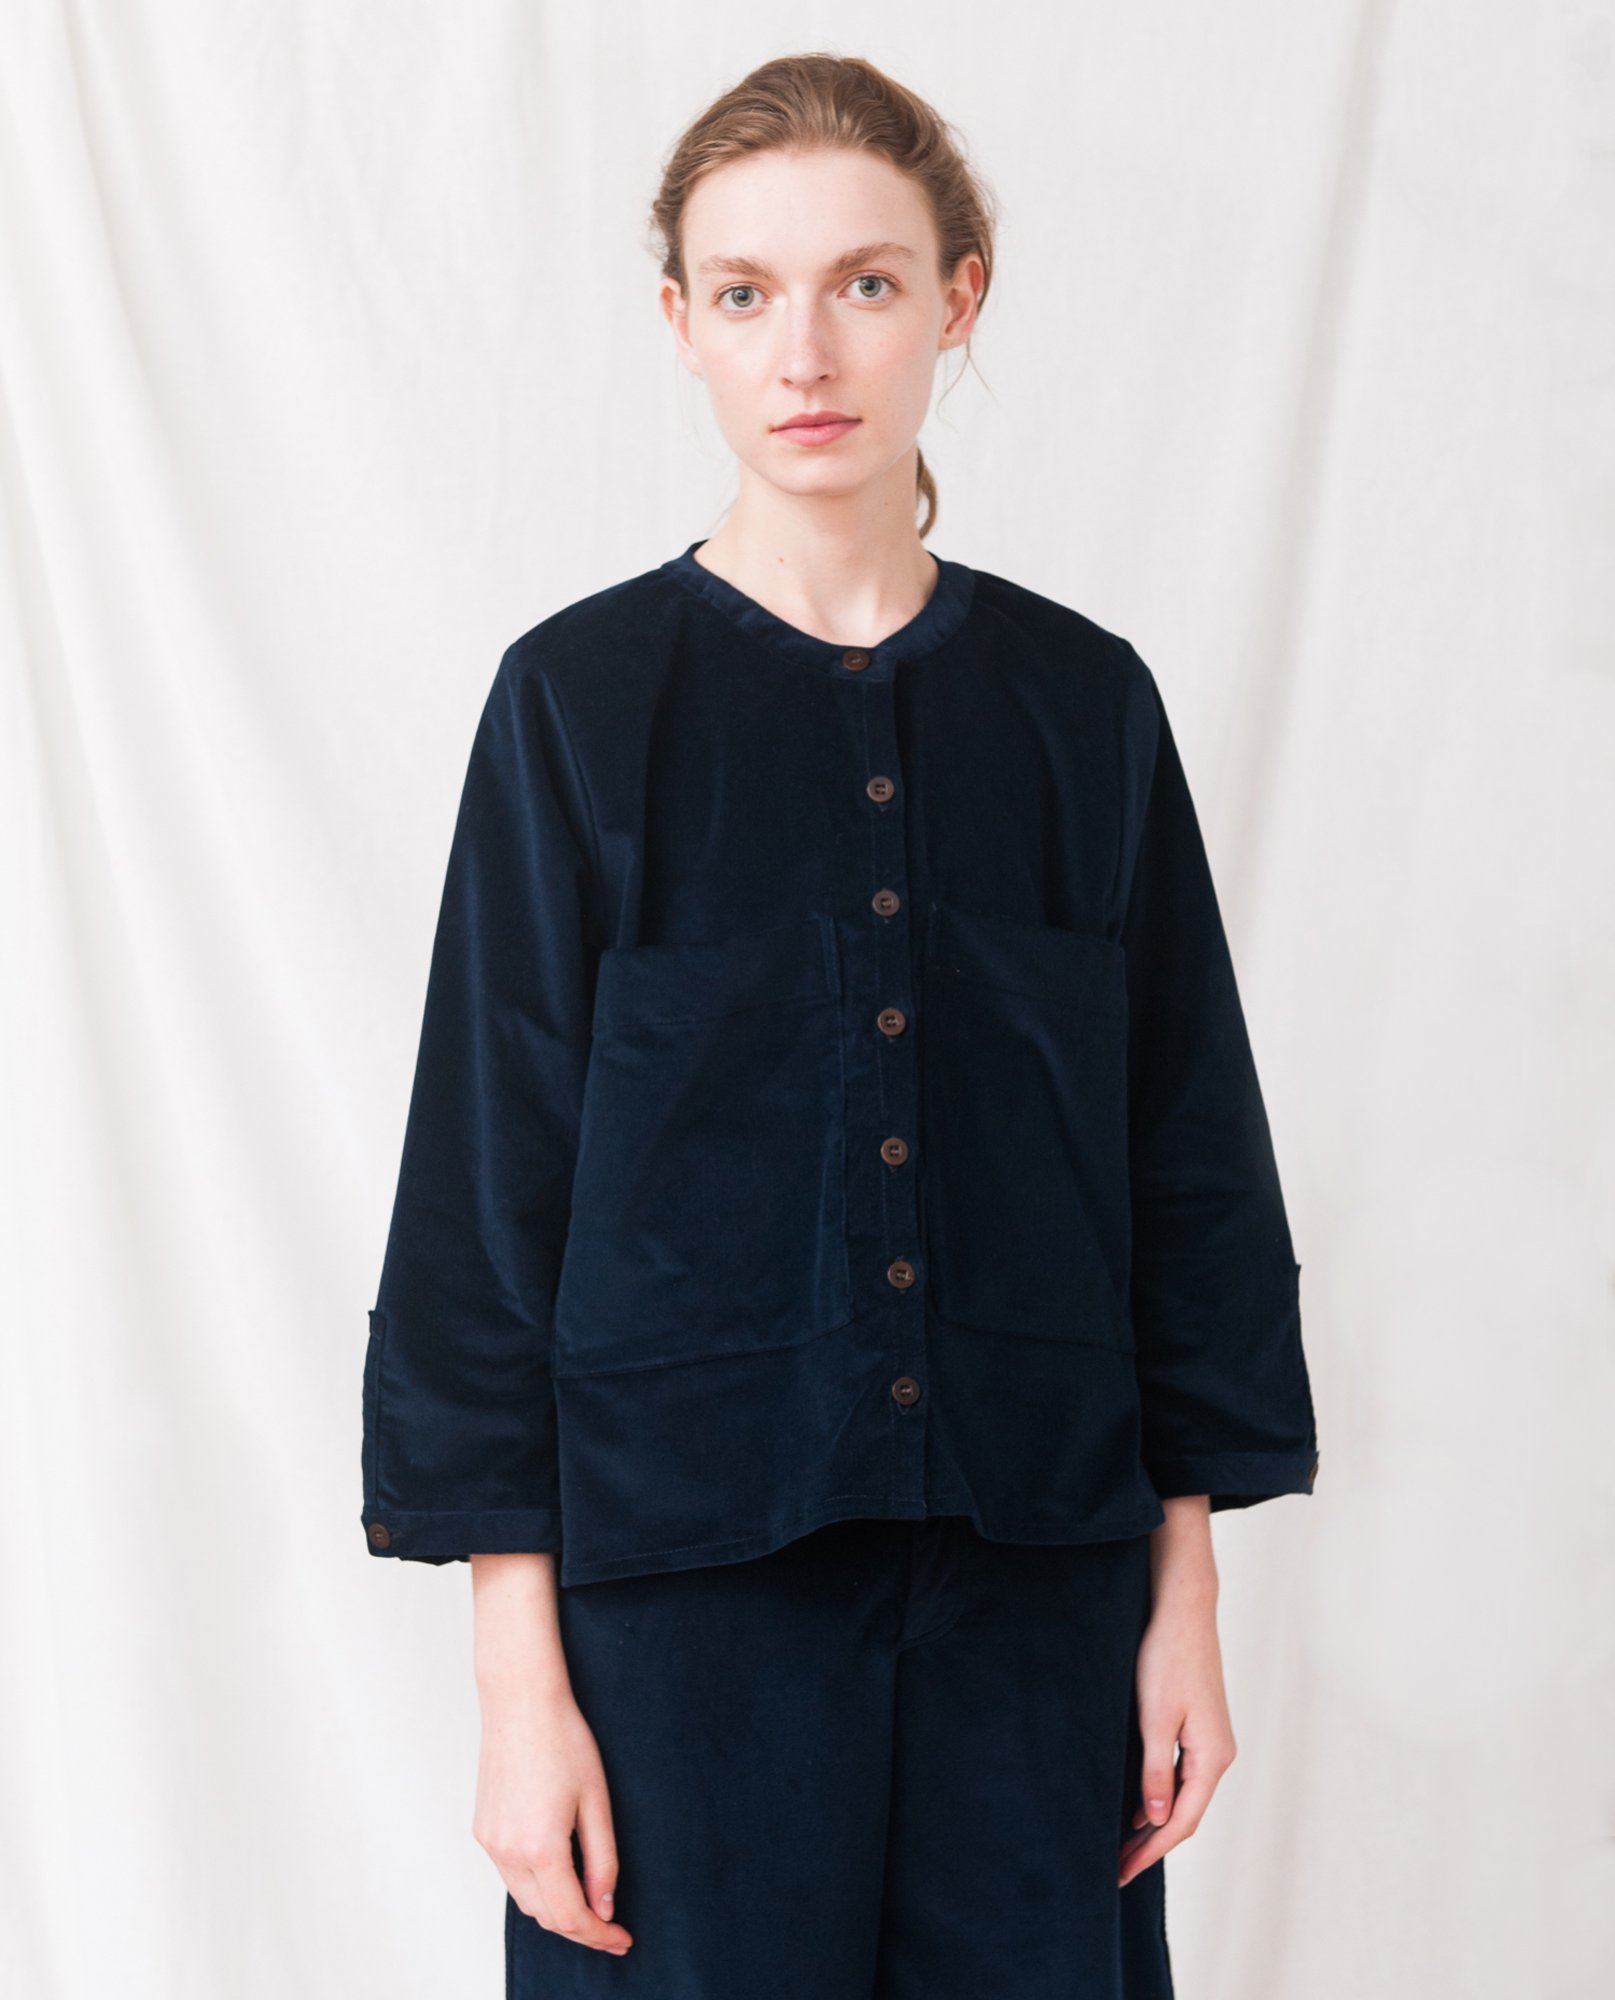 BONNIE Organic Cotton Cord Shirt In Navy from Beaumont Organic